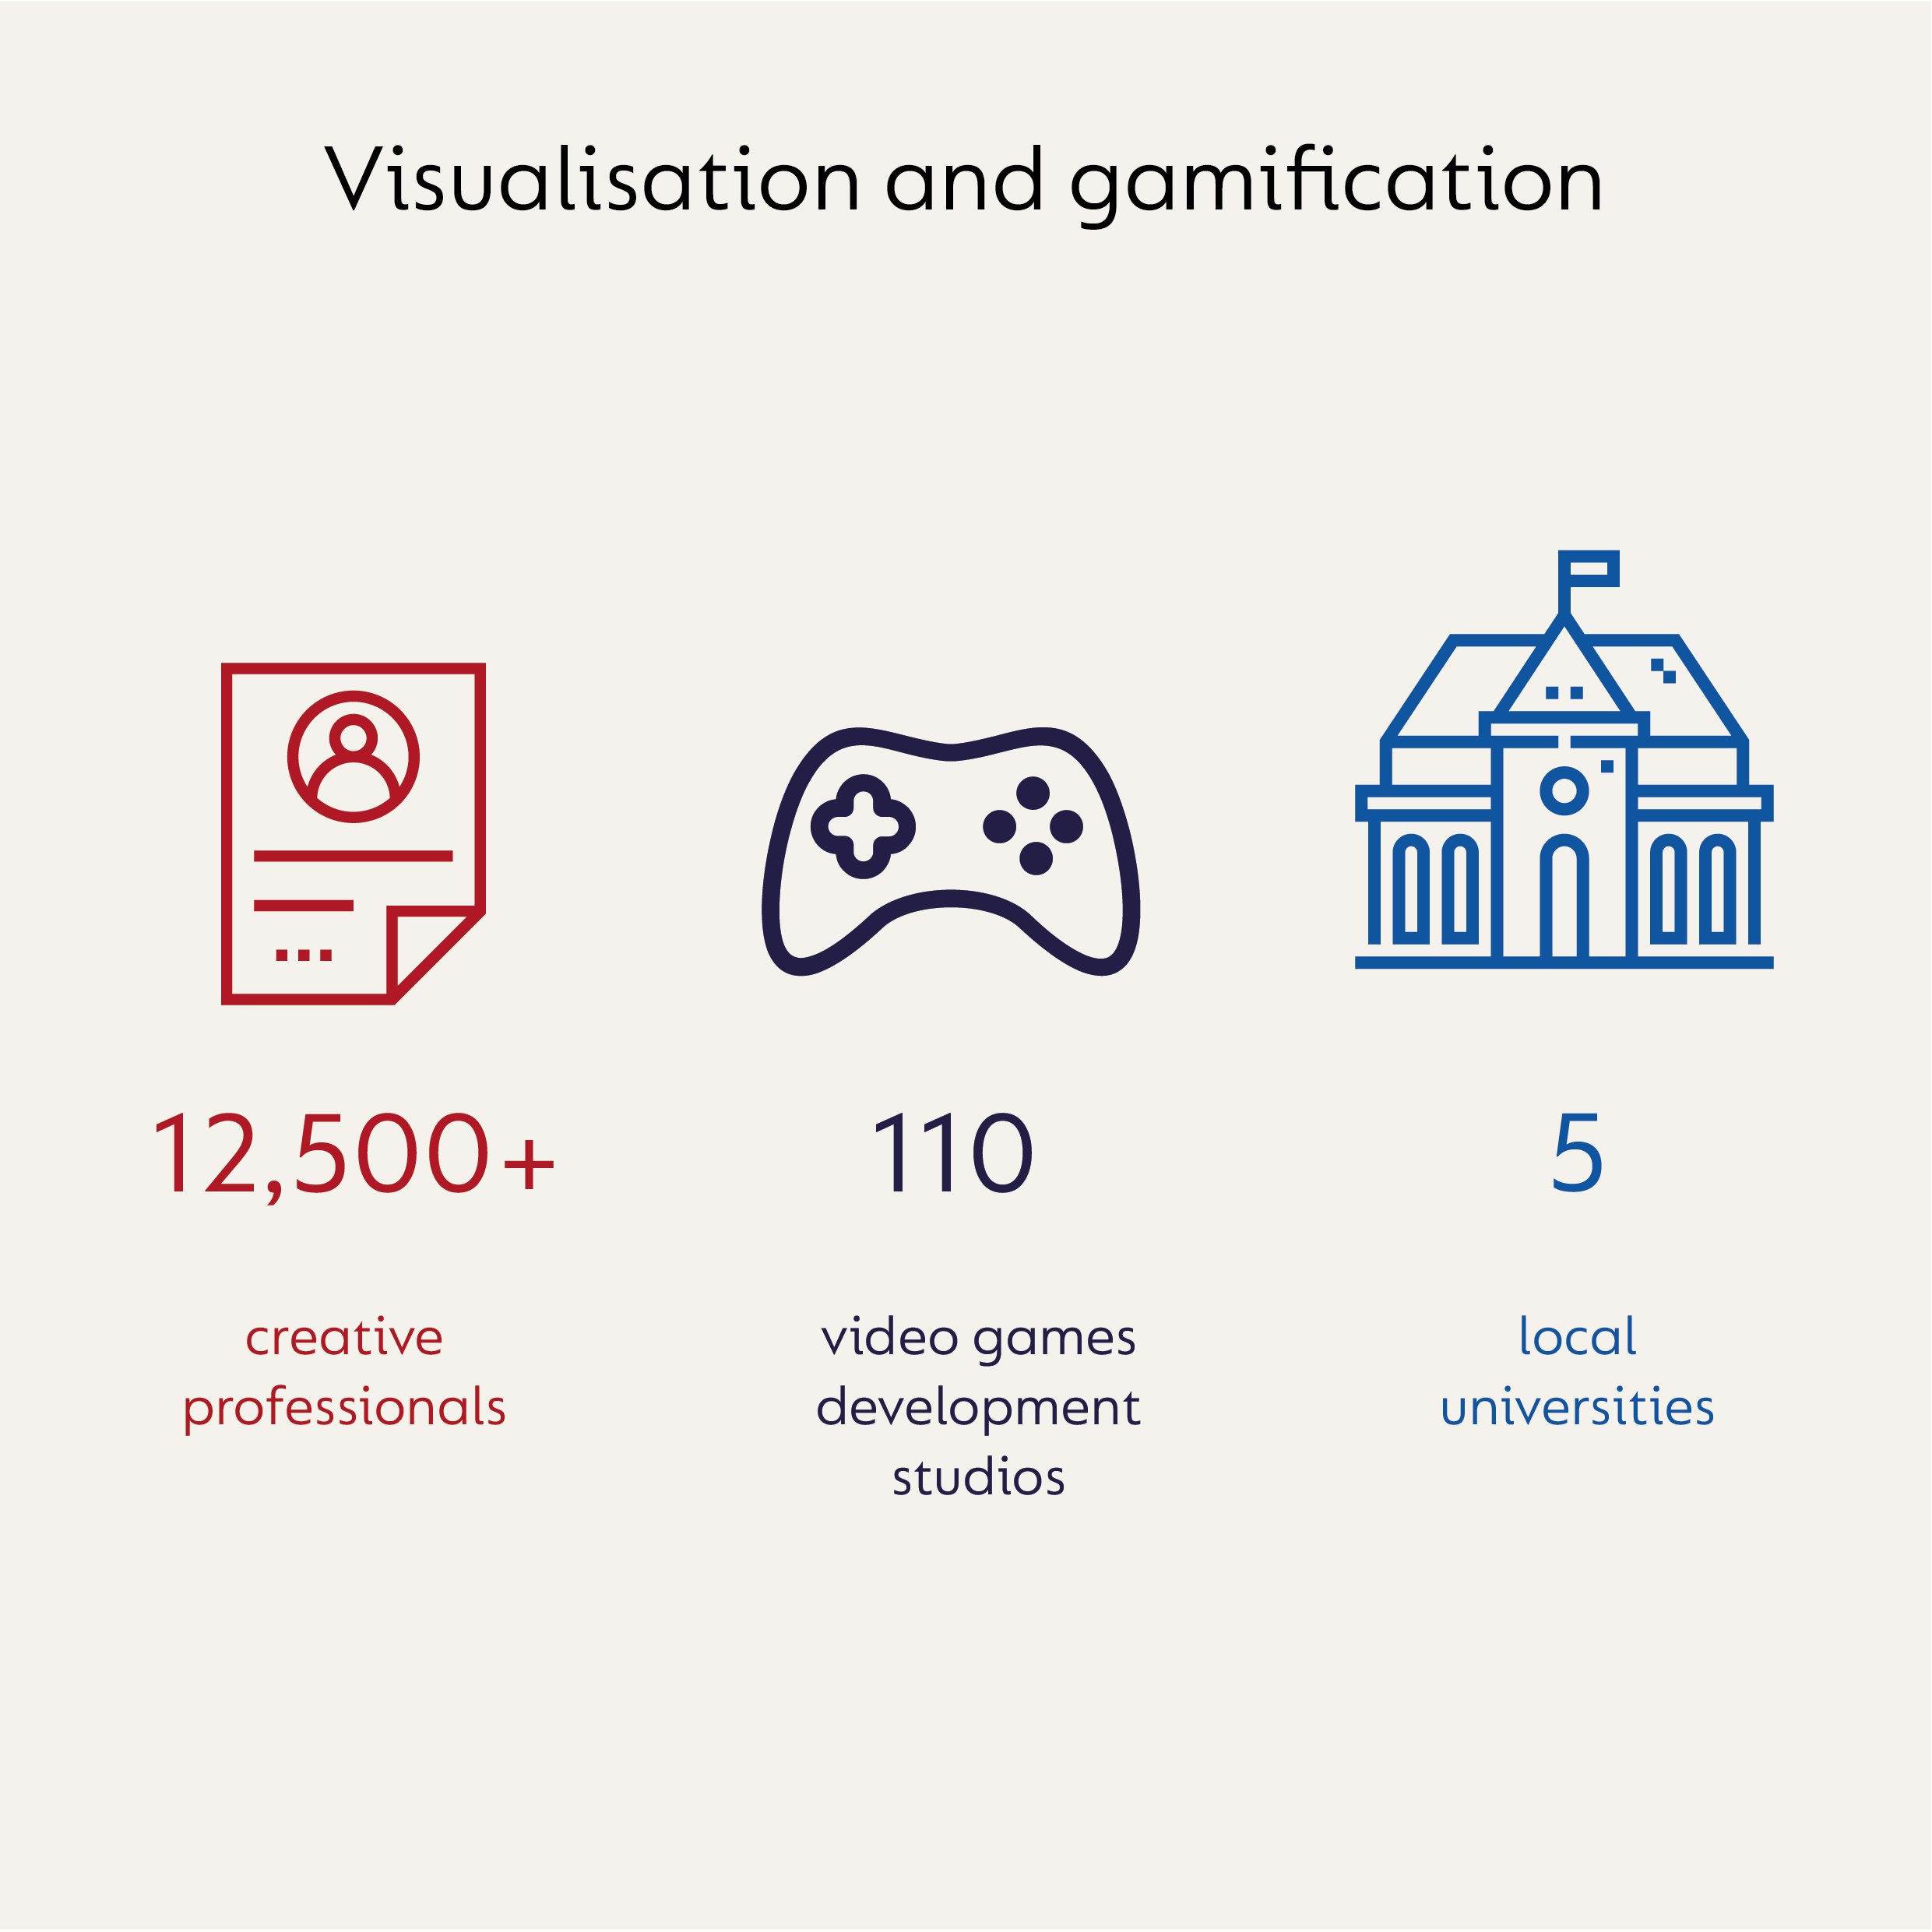 12,500 creative professionals, 110 video games studios, 5 local universities